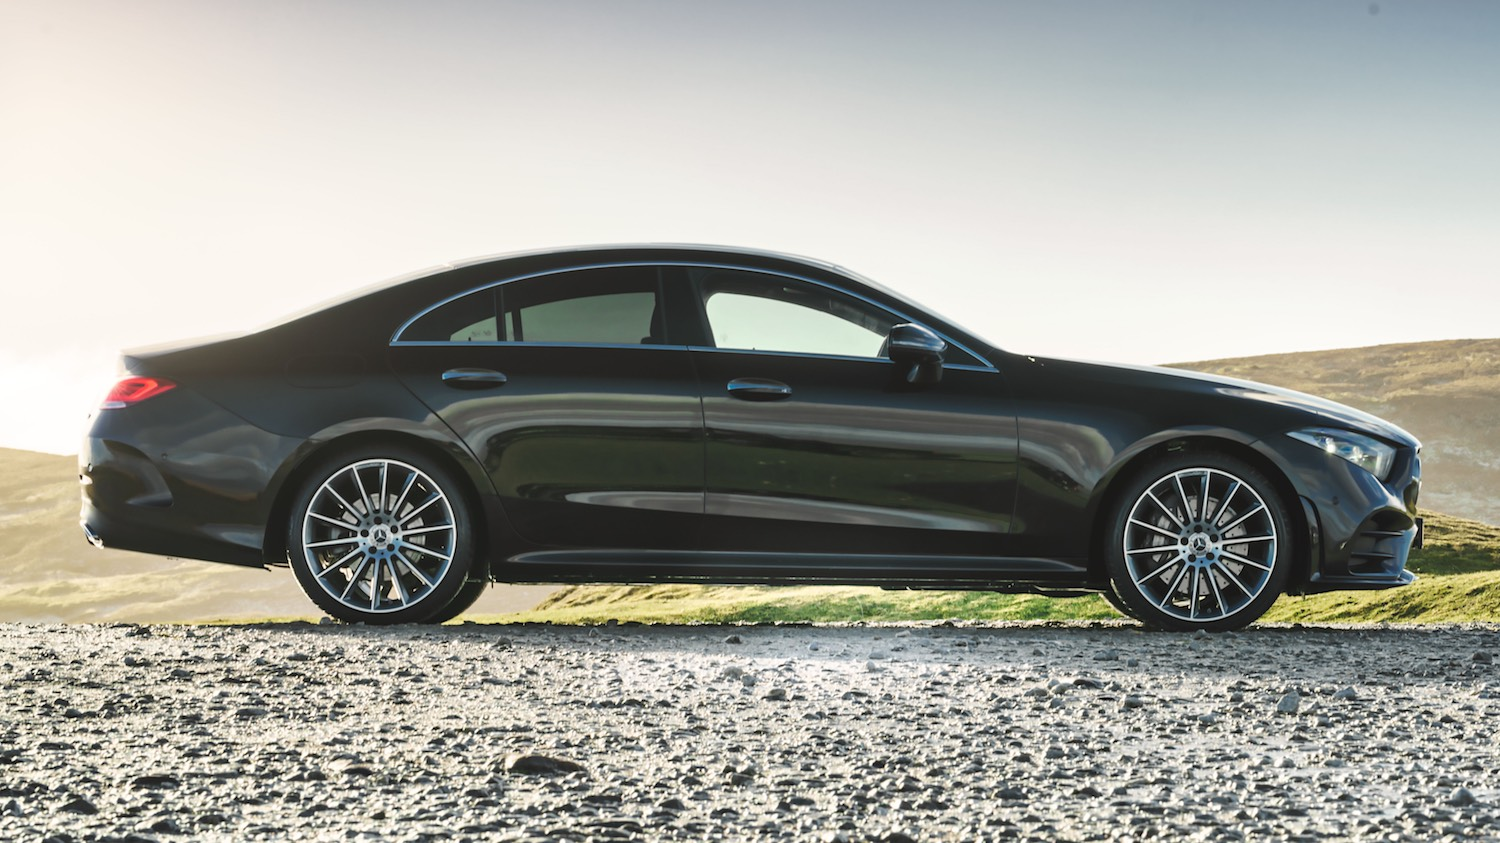 Paul Beard reviews the Mercedes Benz CLS 450 AMG Line for Drive 10